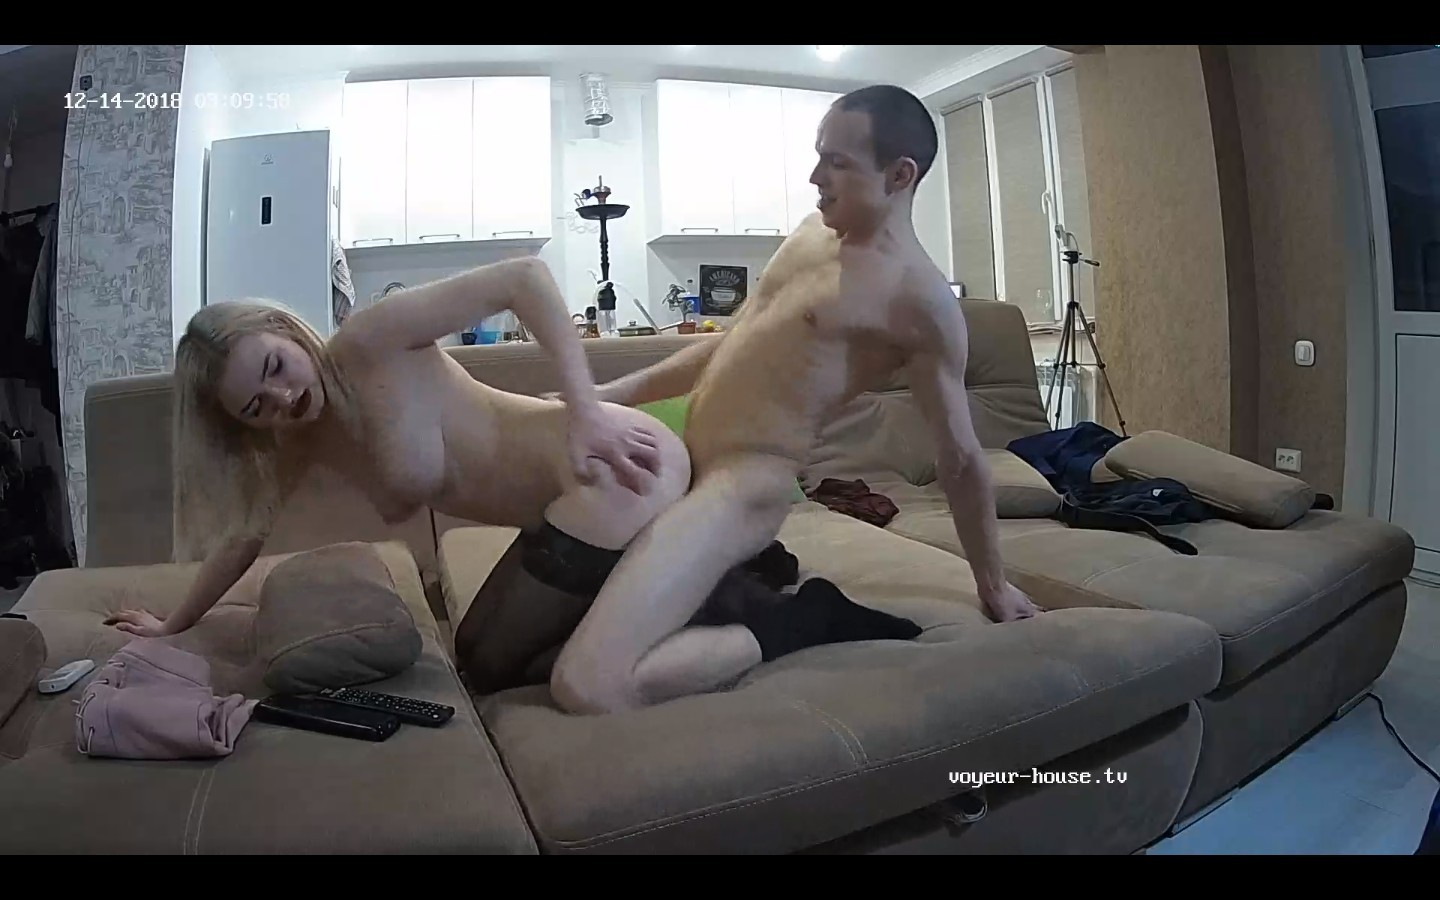 Alisa Sex Video watch hard sex alisa and guest guy hard sex,dec 14 | naked